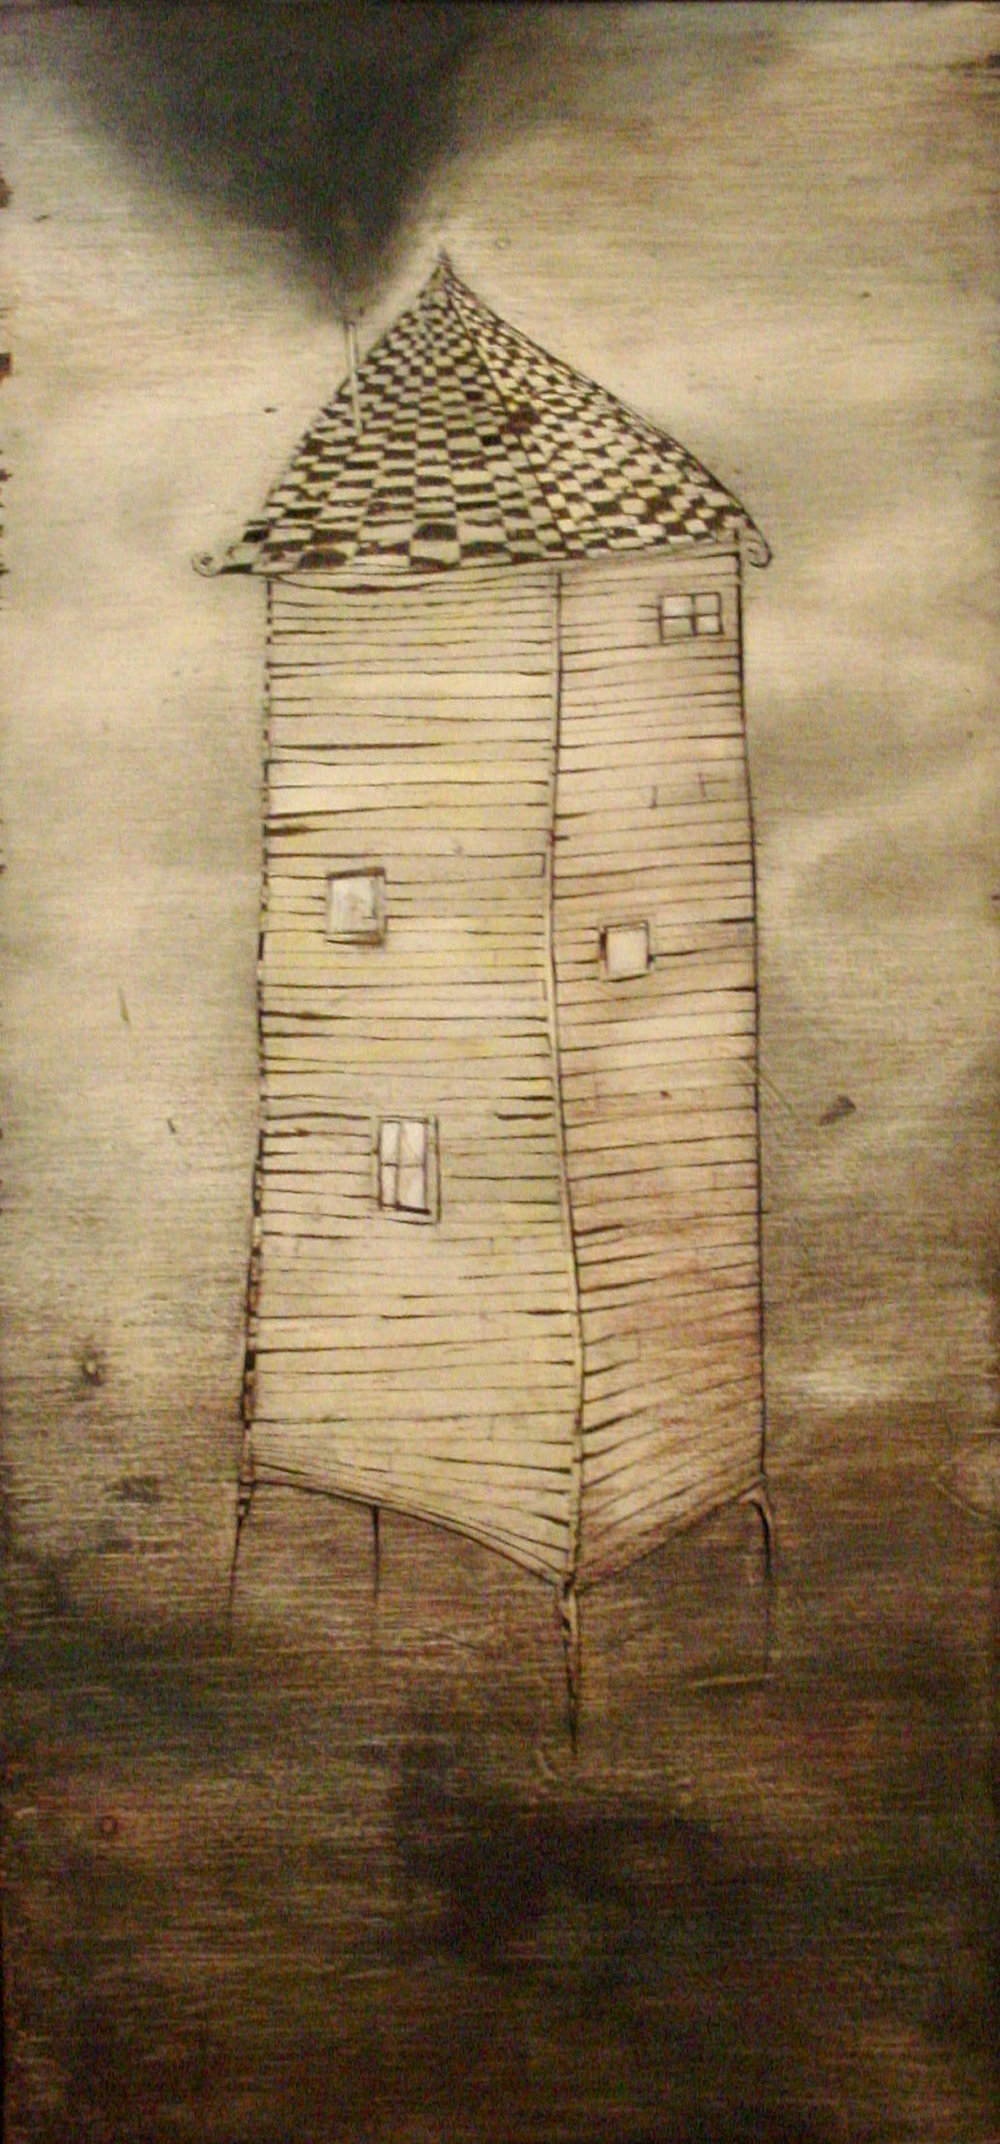 Smoke Tower, Oil on Wood, 24x50 in, 2009, sold